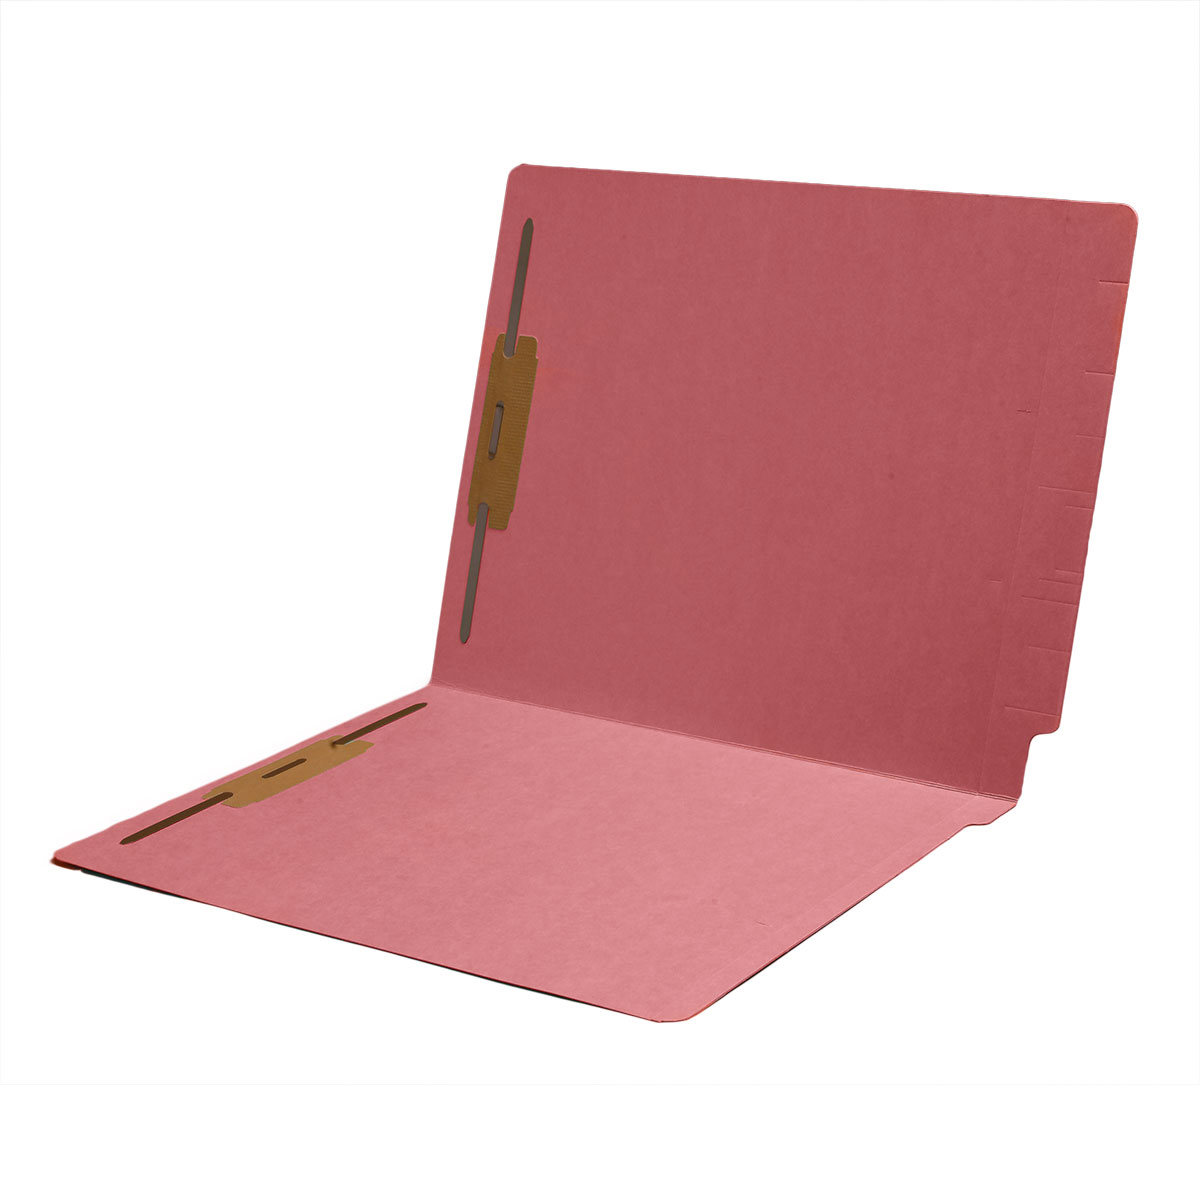 S-1502-PNK - 11 pt Color Folders, Full Cut 2-Ply End Tab, Letter Size, Fasteners Pos #1 & #3, Pink (Box of 50)